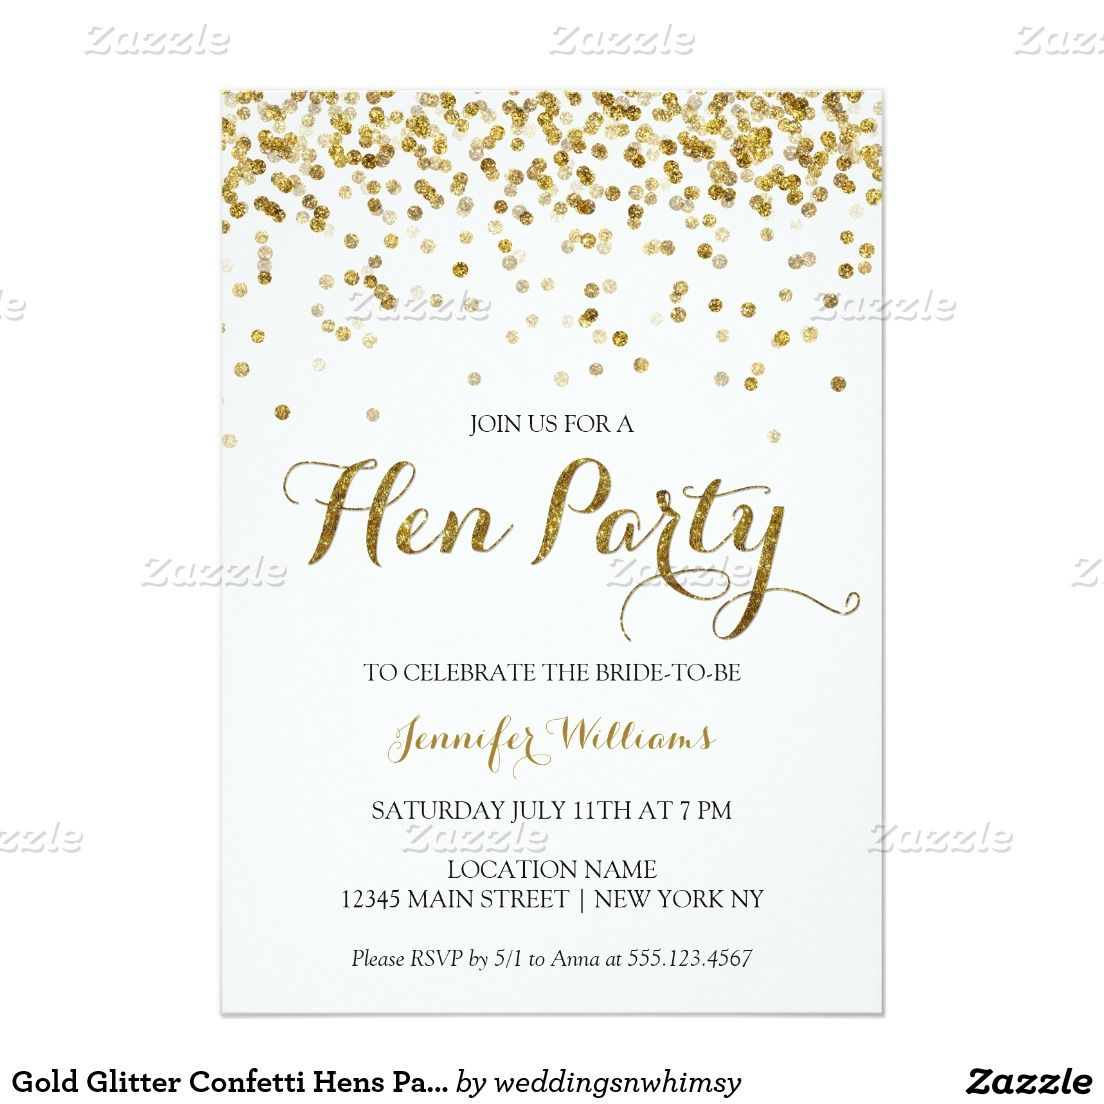 Gold Glitter Confetti Hens Party Invite | Glitter confetti, Hens and ...